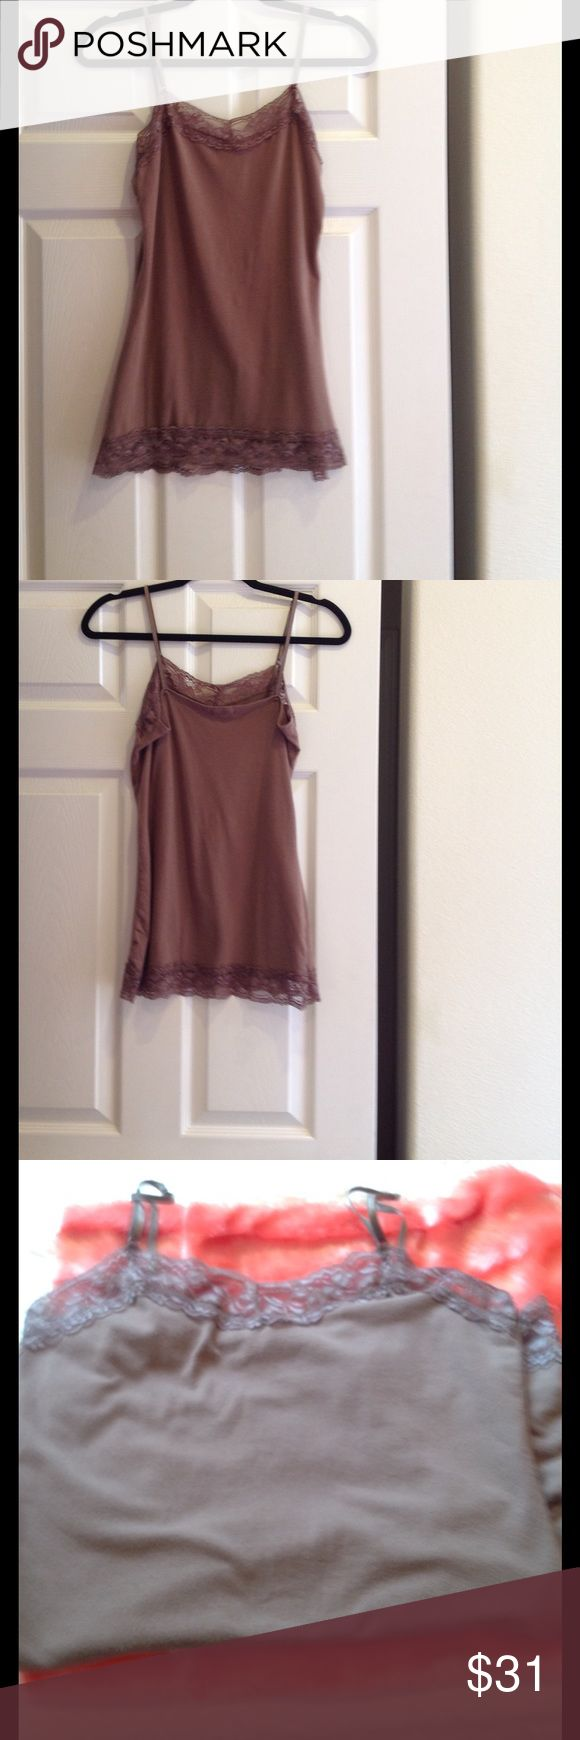 Zenana Outfitters women's camisole. Size M. Zenana Outfitters women's brown camisole with lace trim at top front and bottom of camisole. Elastic adjustable straps. Size M. Zenana Outfitters Tops Camisoles